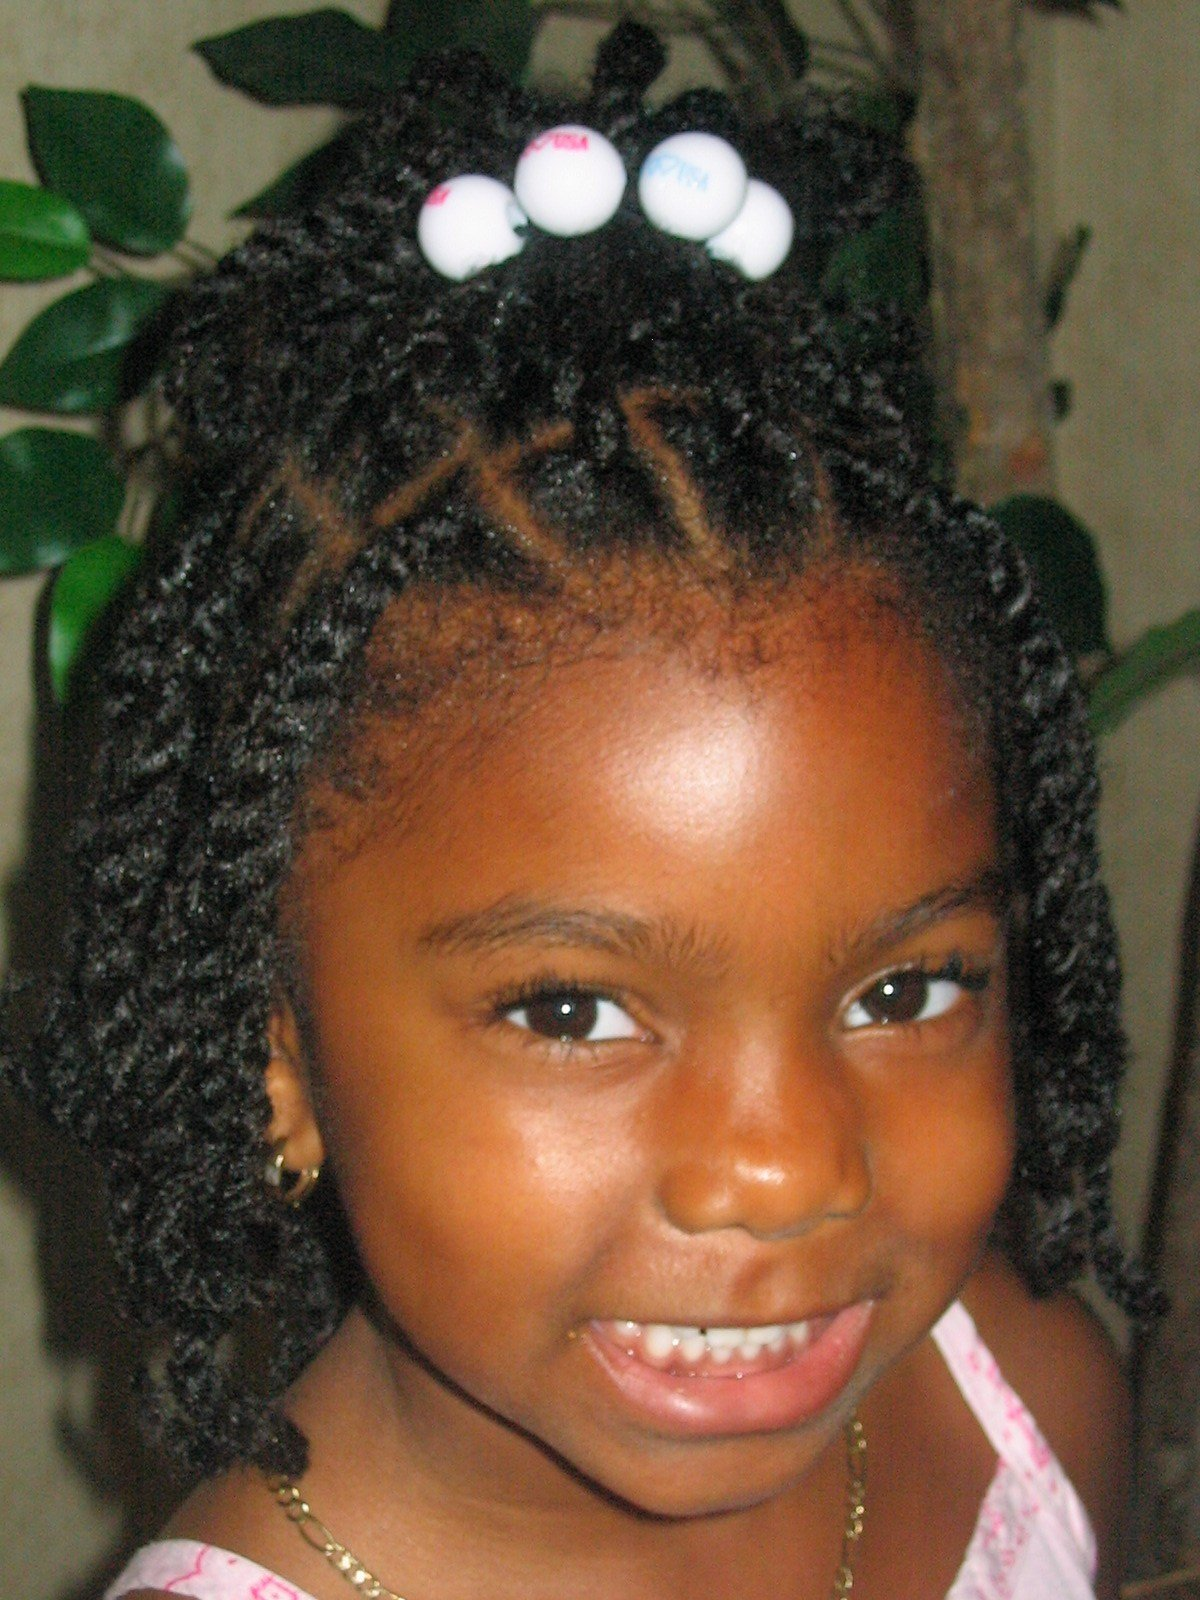 New Pictures Of Children Hairstyles Black Hair Media Forum Ideas With Pictures Original 1024 x 768